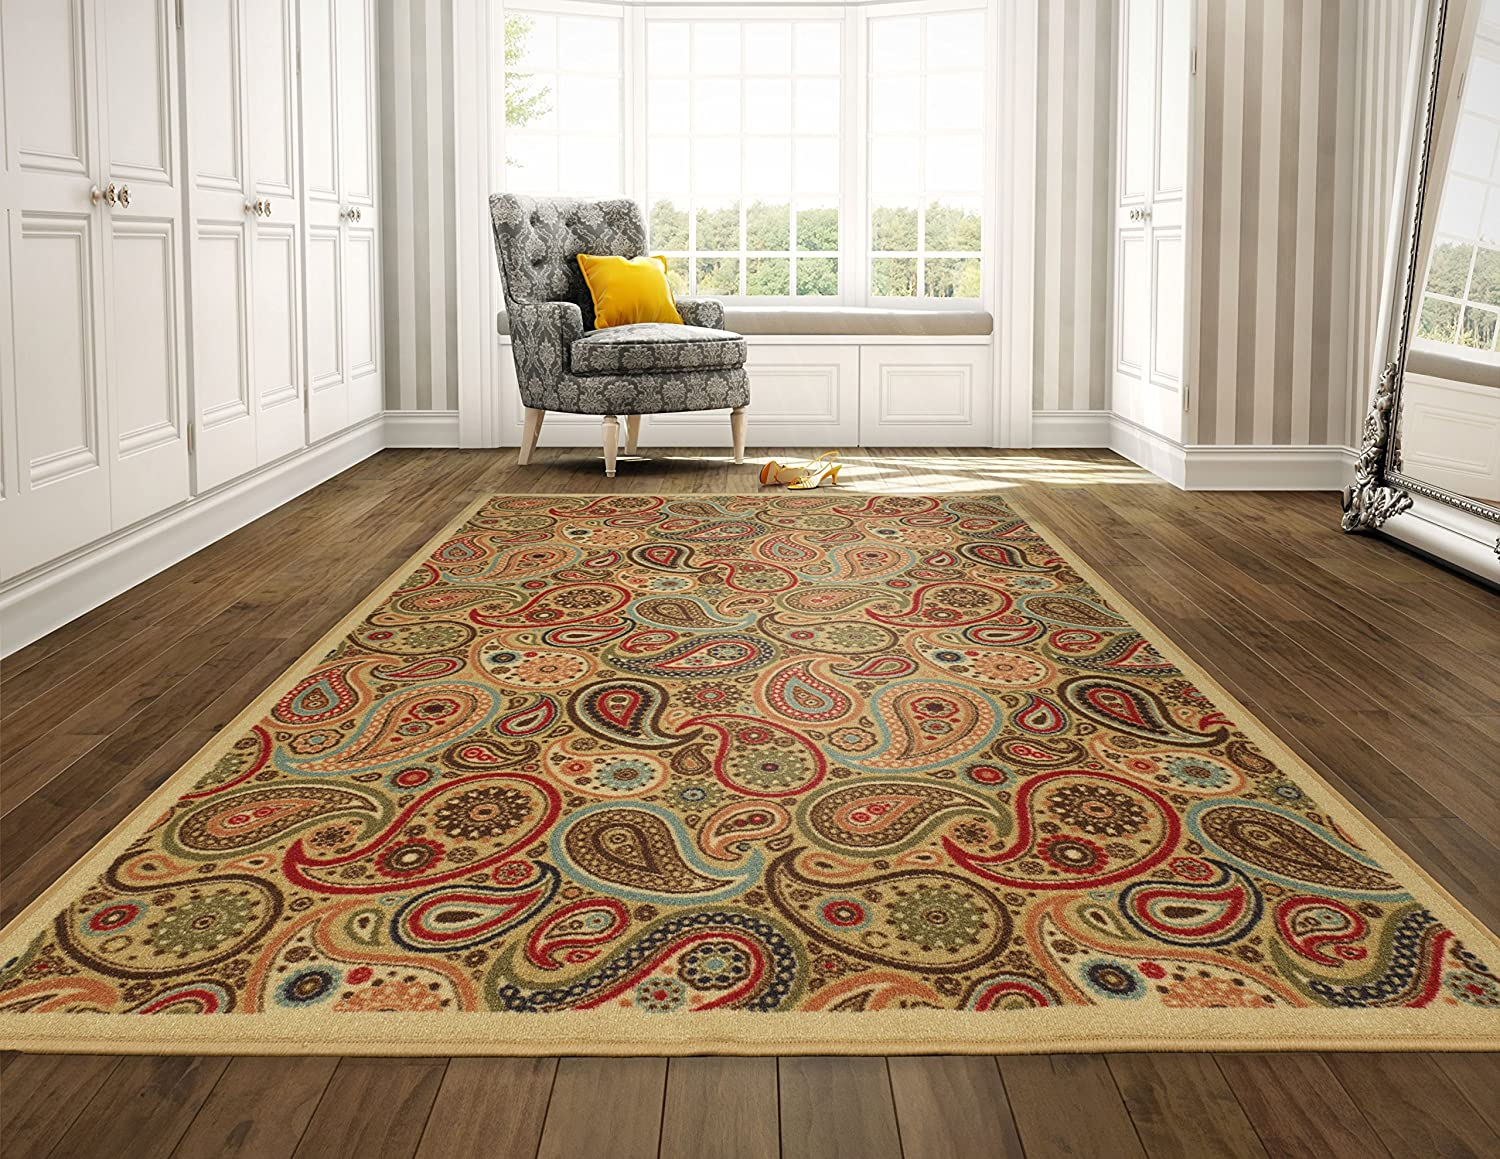 Ottomanson Ottohome Collection Contemporary Paisley Design Modern Runner Rug with Non-Skid (Non-Slip) Rubber Backing, 1'10 W X 7' L, Beige 1'10 W X 7' L OTH2152-2X7